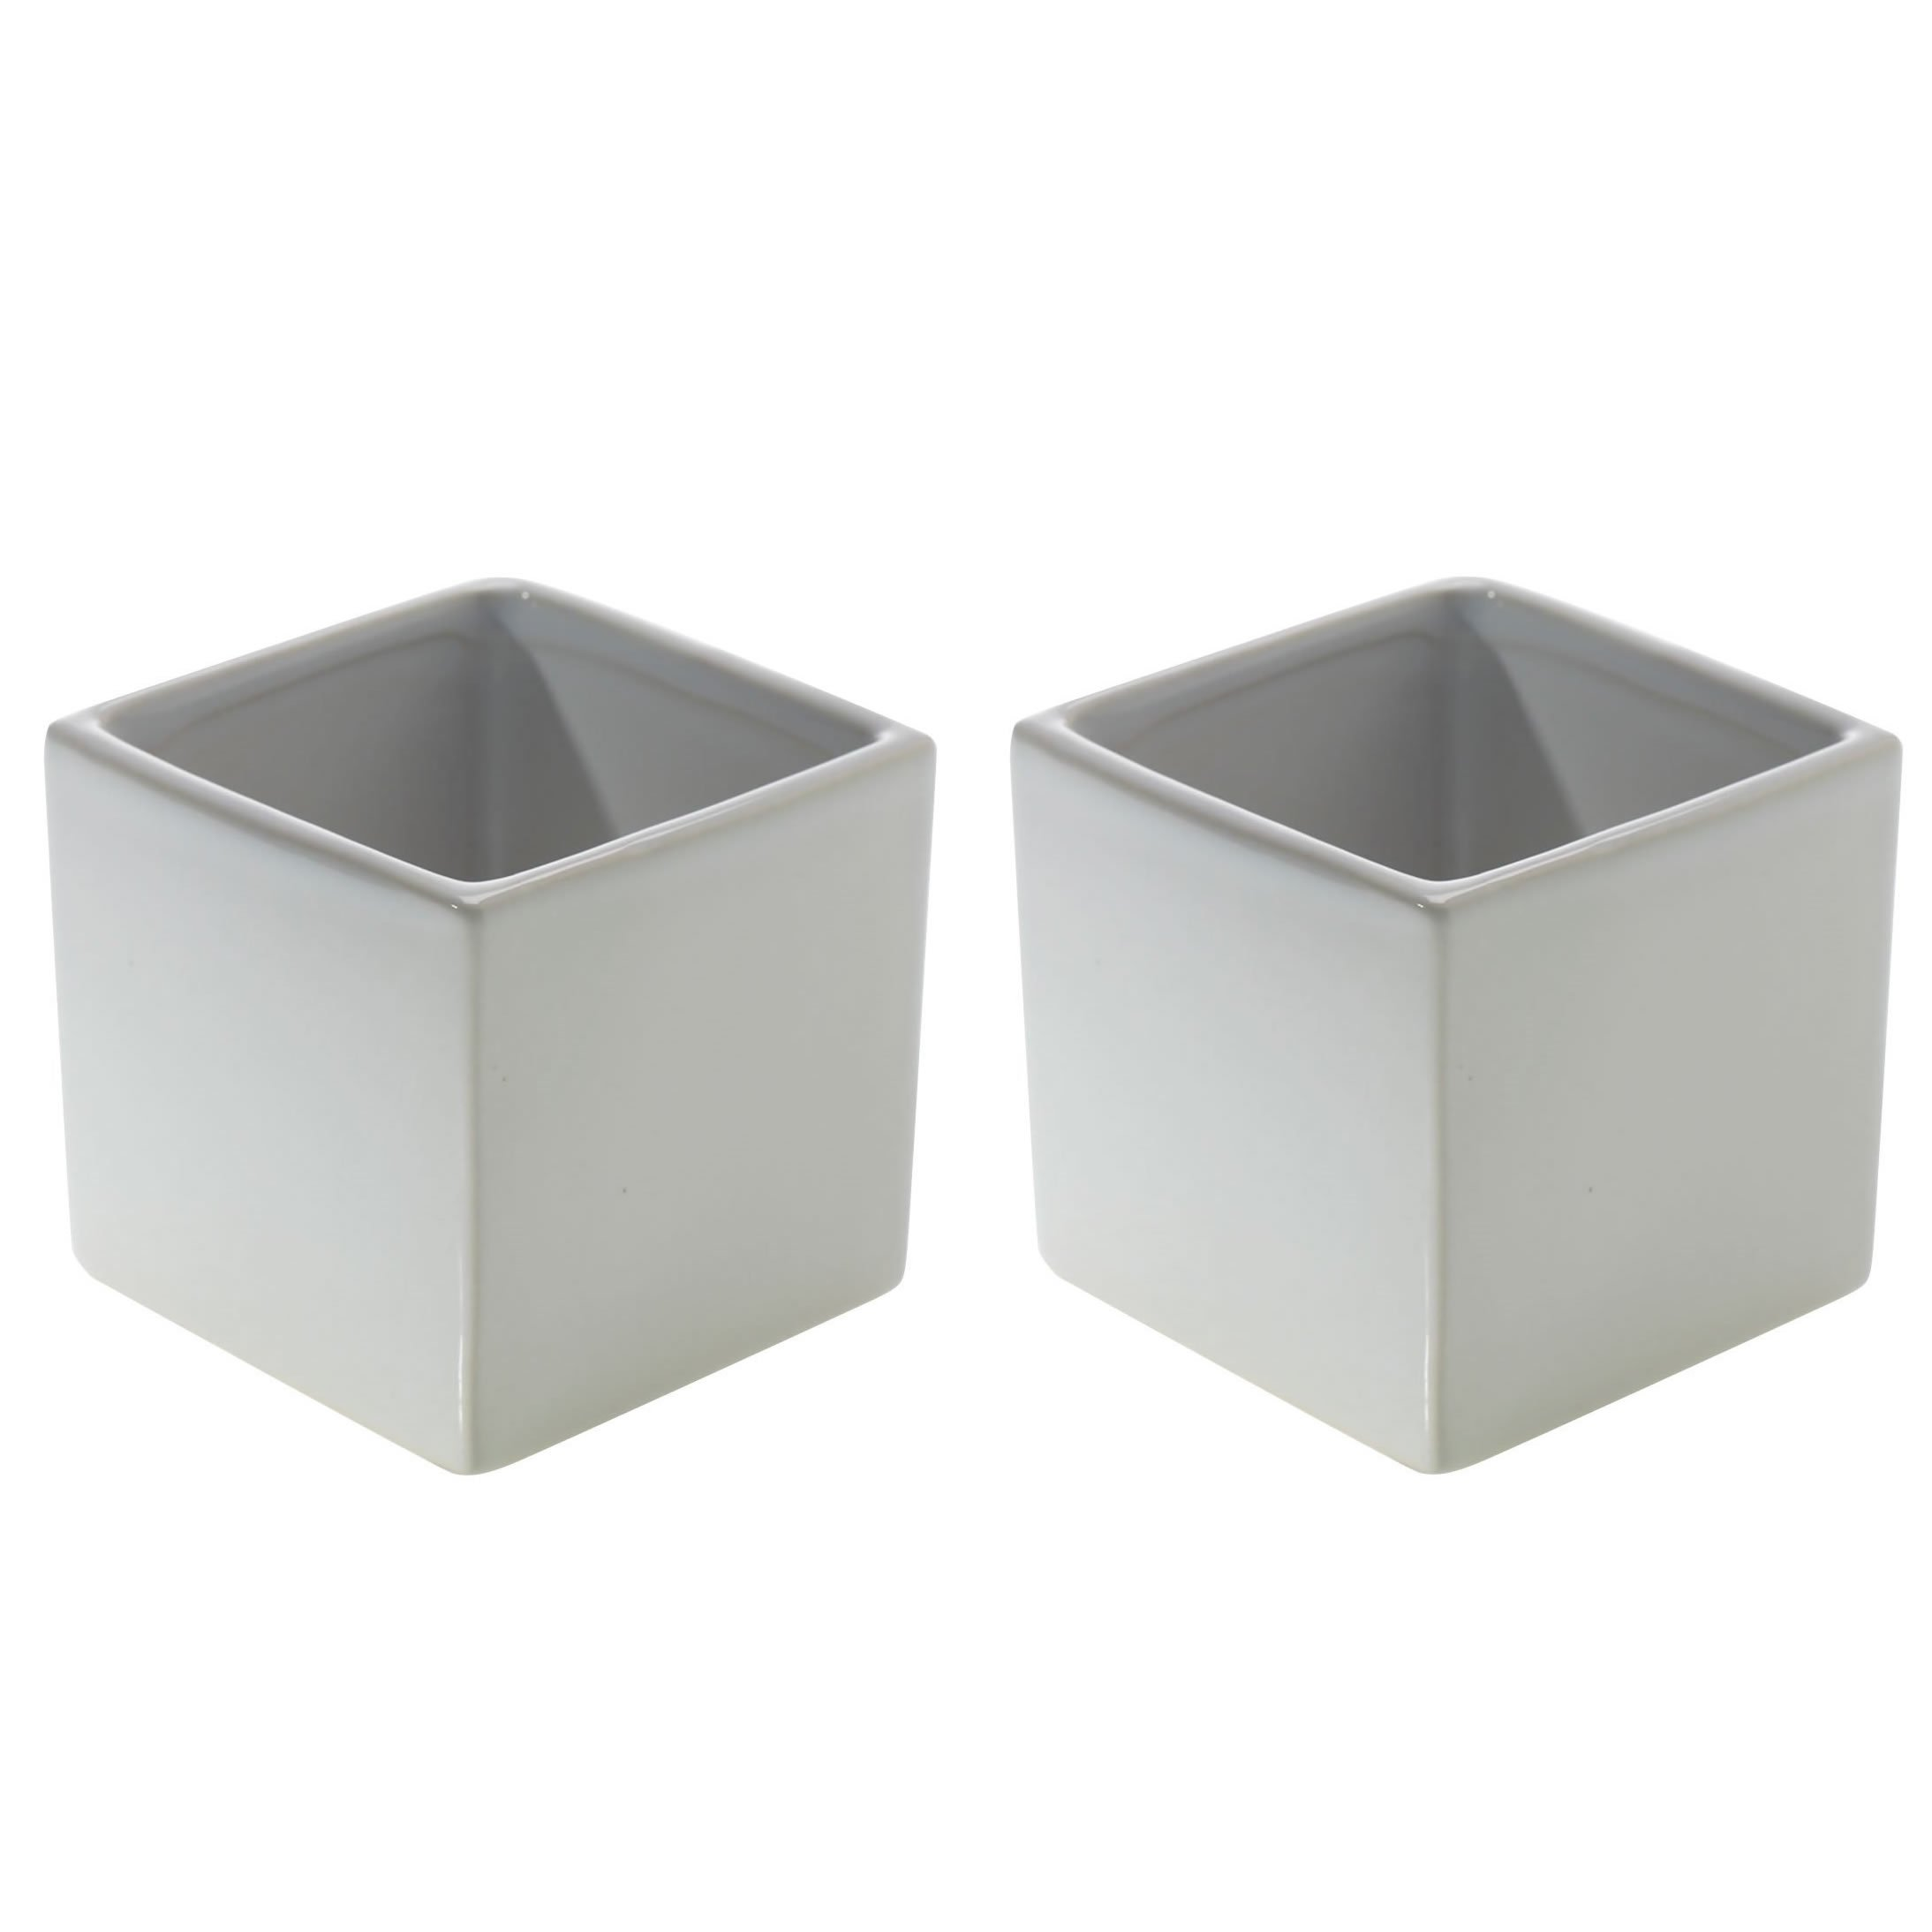 Glossy White Square Vase - Set of 2 - 3.25 x 3.25 Inches - Ceramic Urban Decor Pot - Small Modern Cube Planter for Office or Home